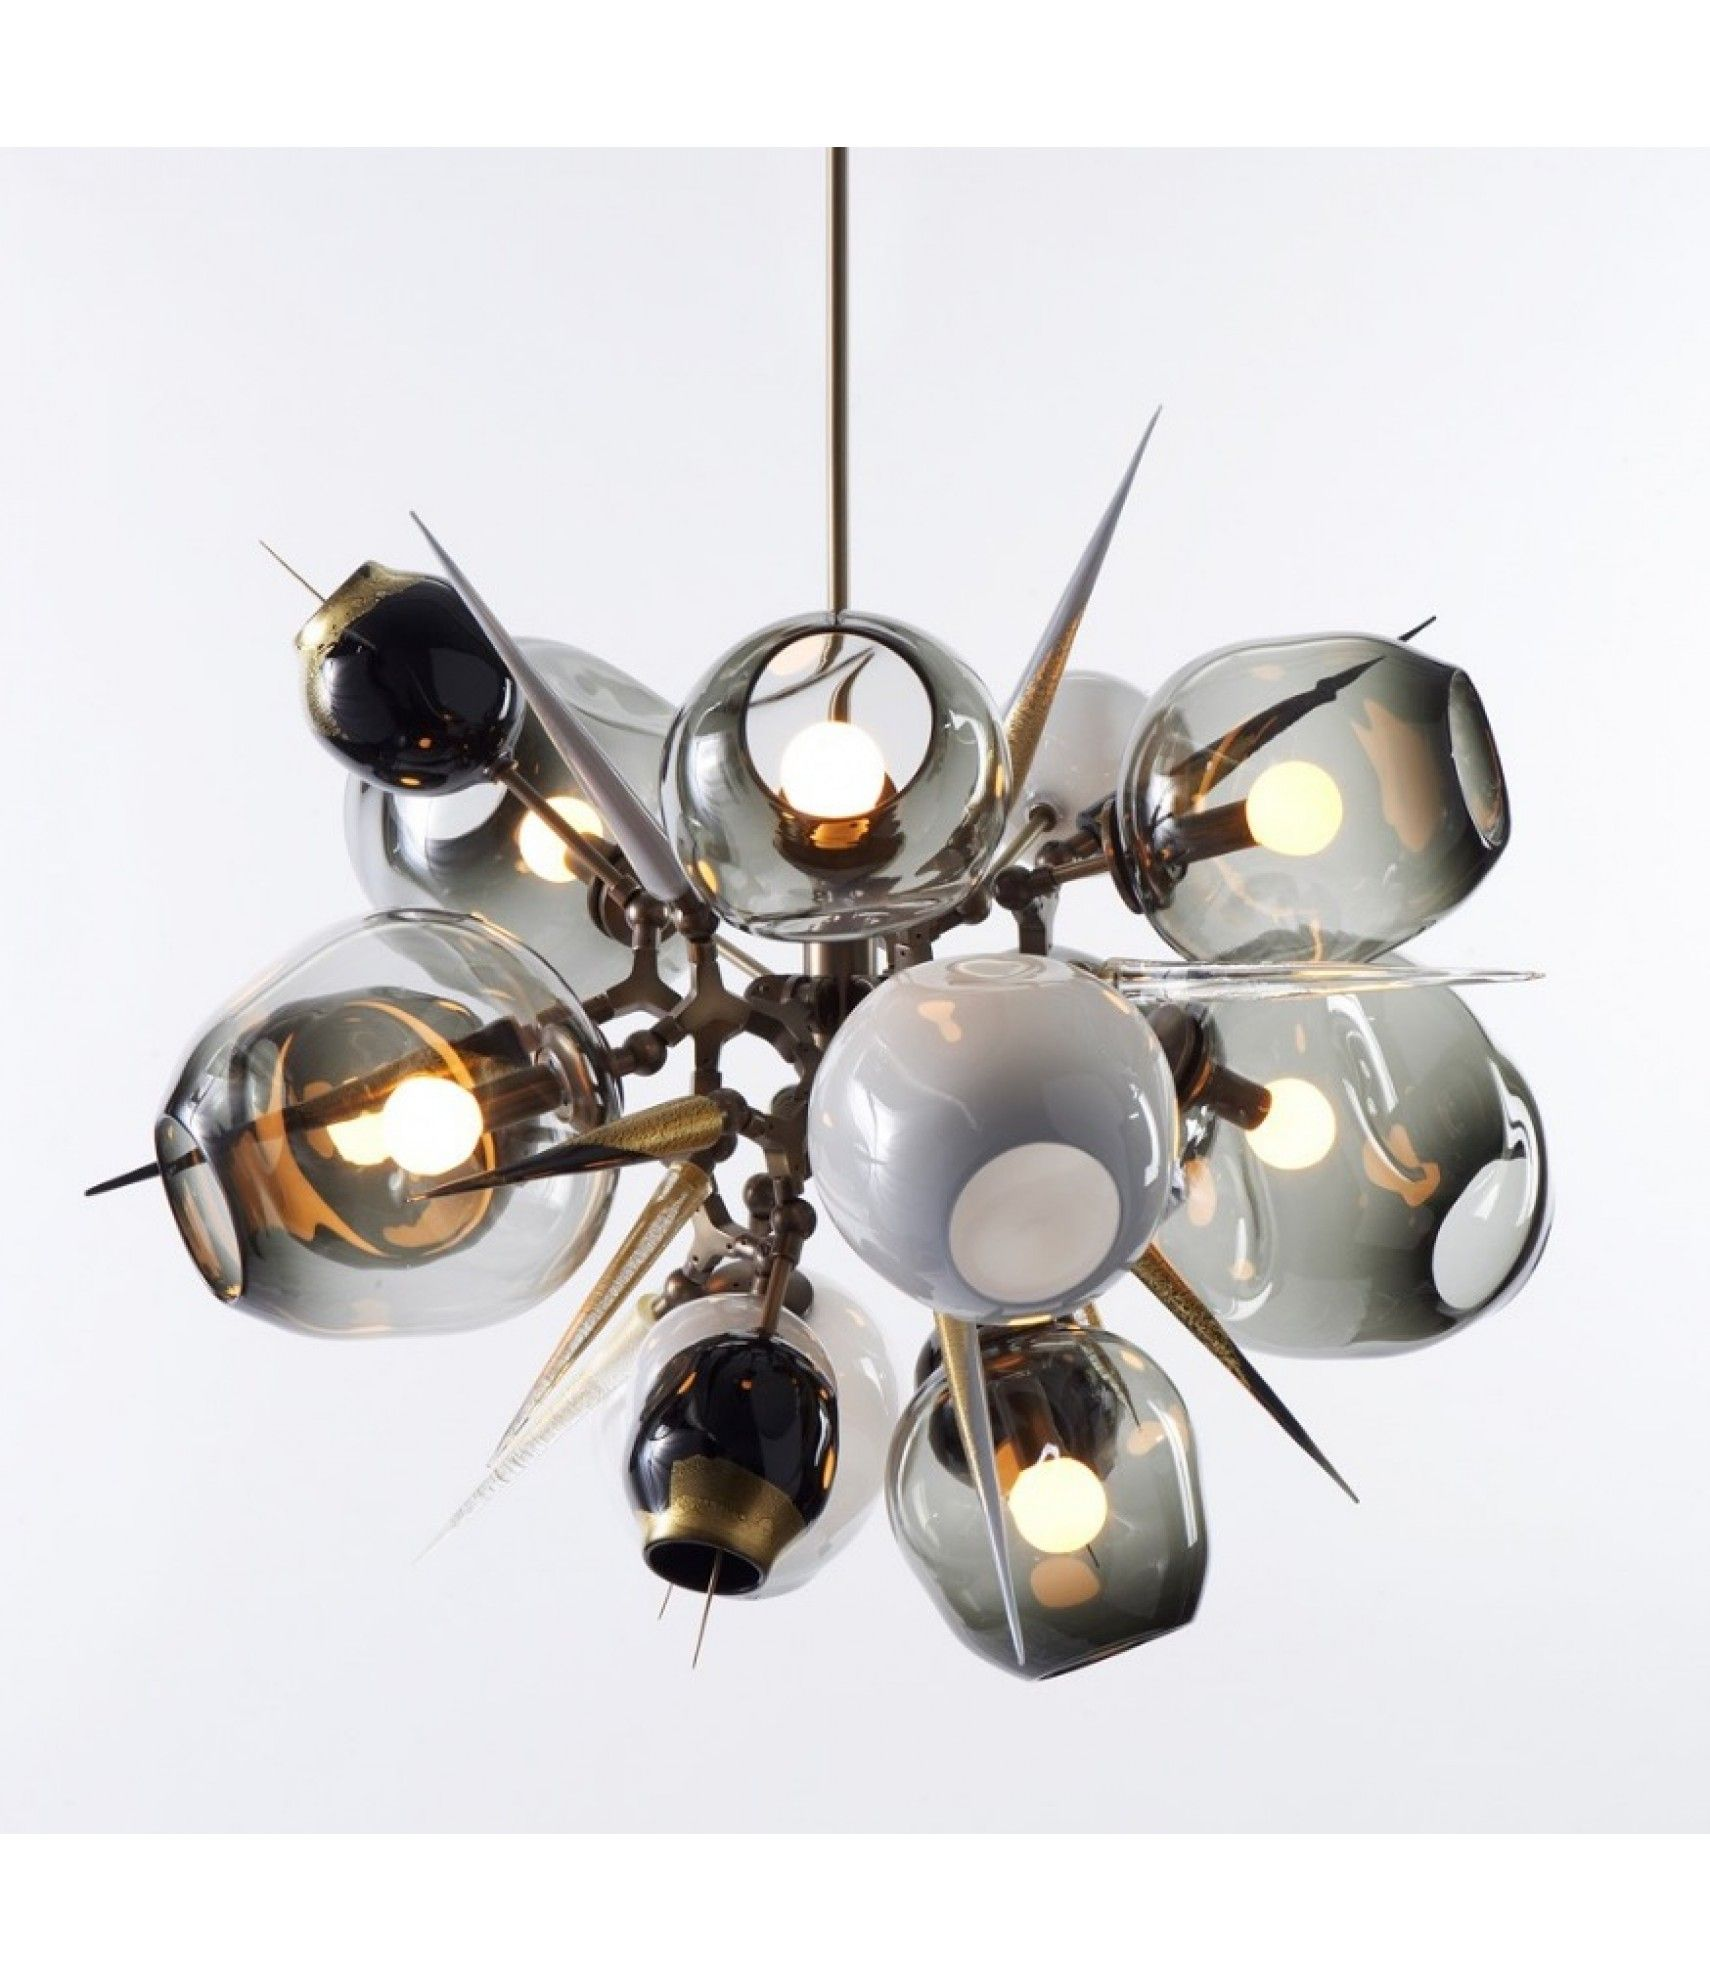 Replica branching burst 1001 chandelier my next home pinterest chandeliers arubaitofo Choice Image